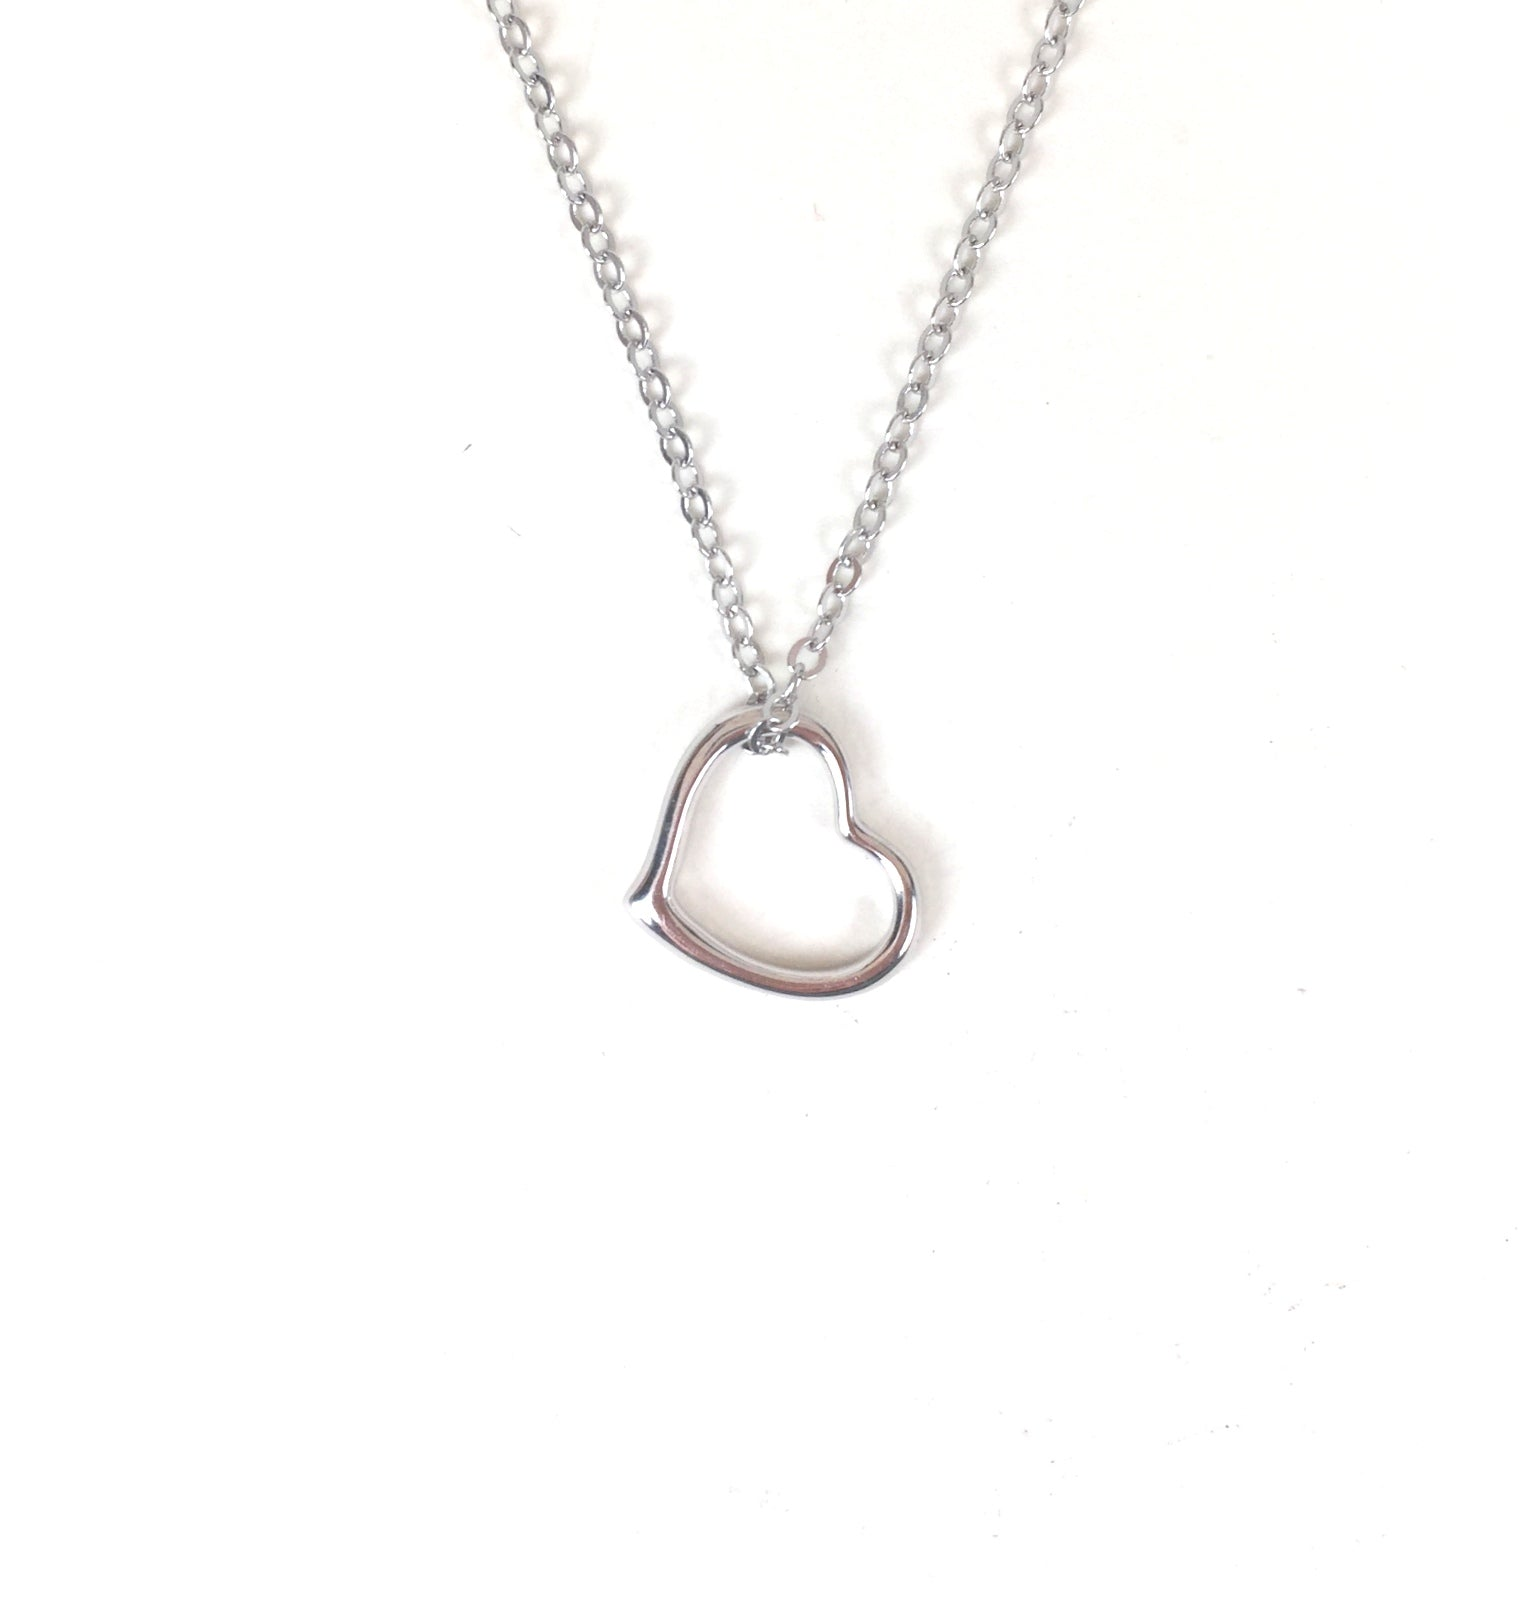 SIMPLE HEART STERLING SILVER NECKLACE